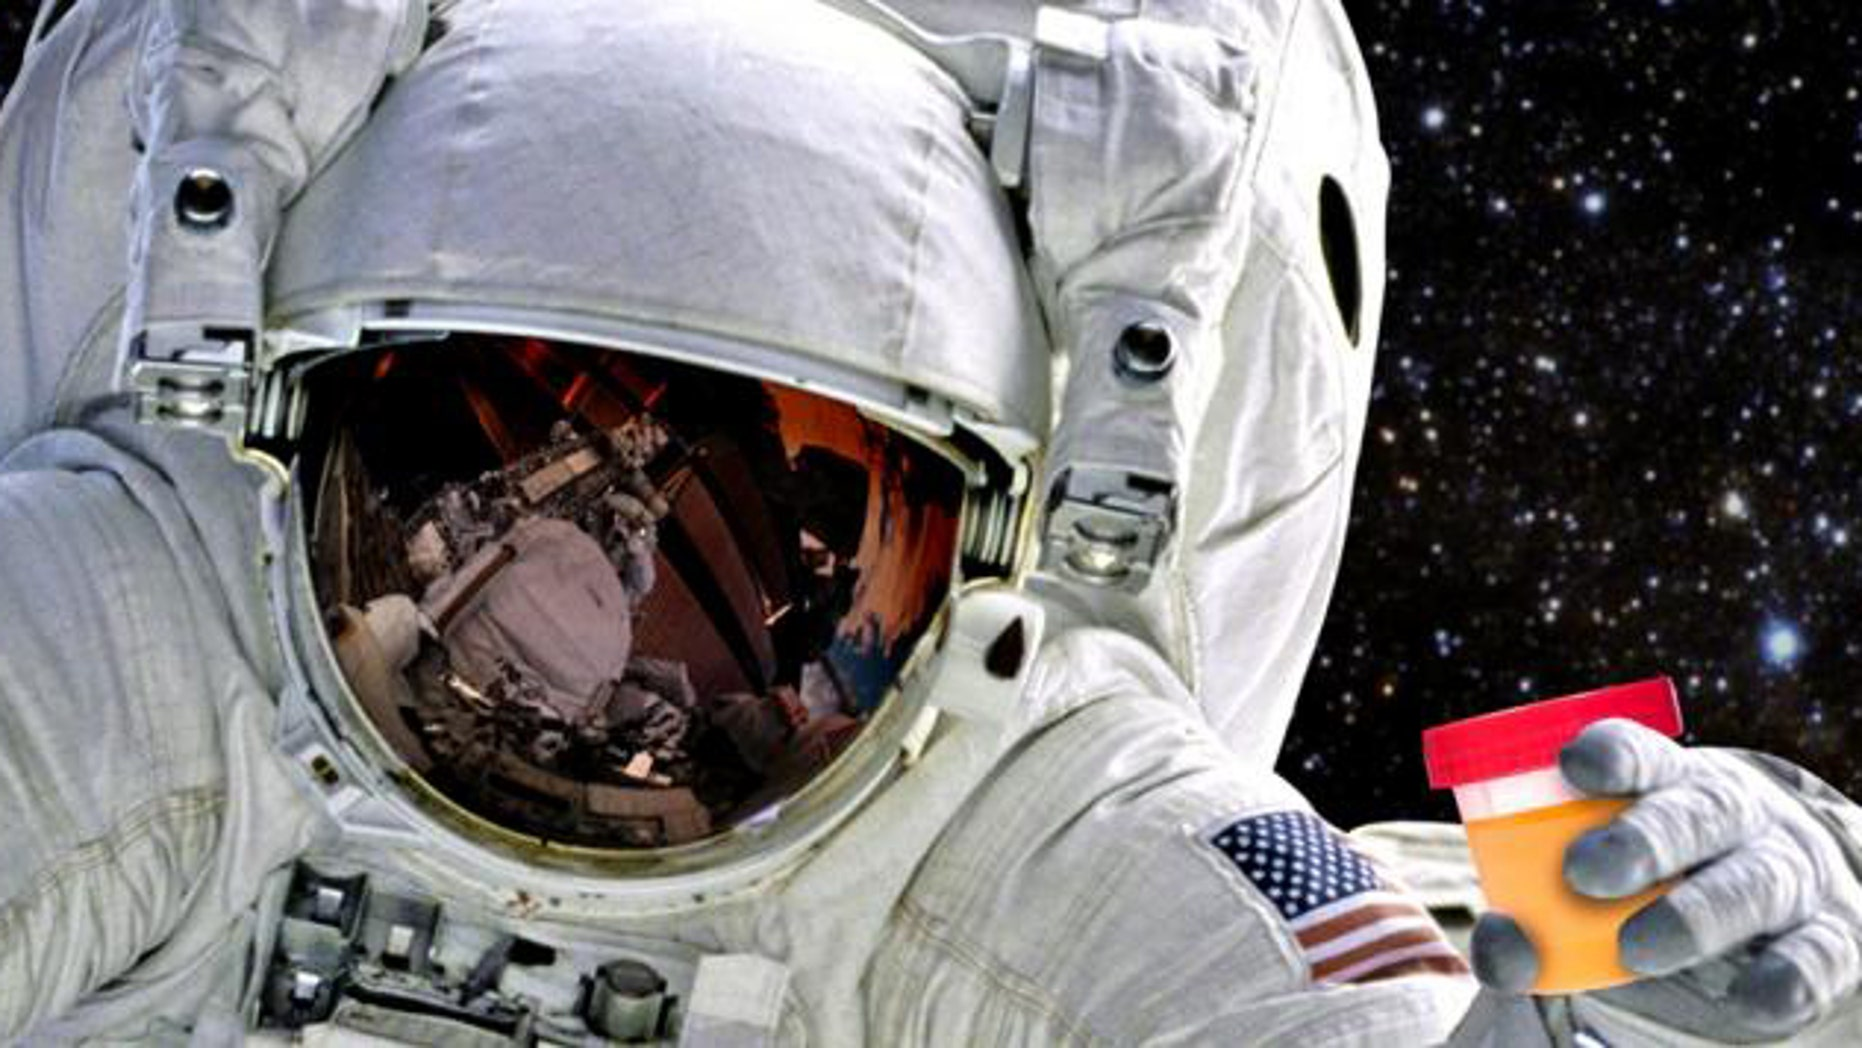 Photo illustration - astronauts could someday benefit from recycling human waste on long space trips (American Chemical Society).